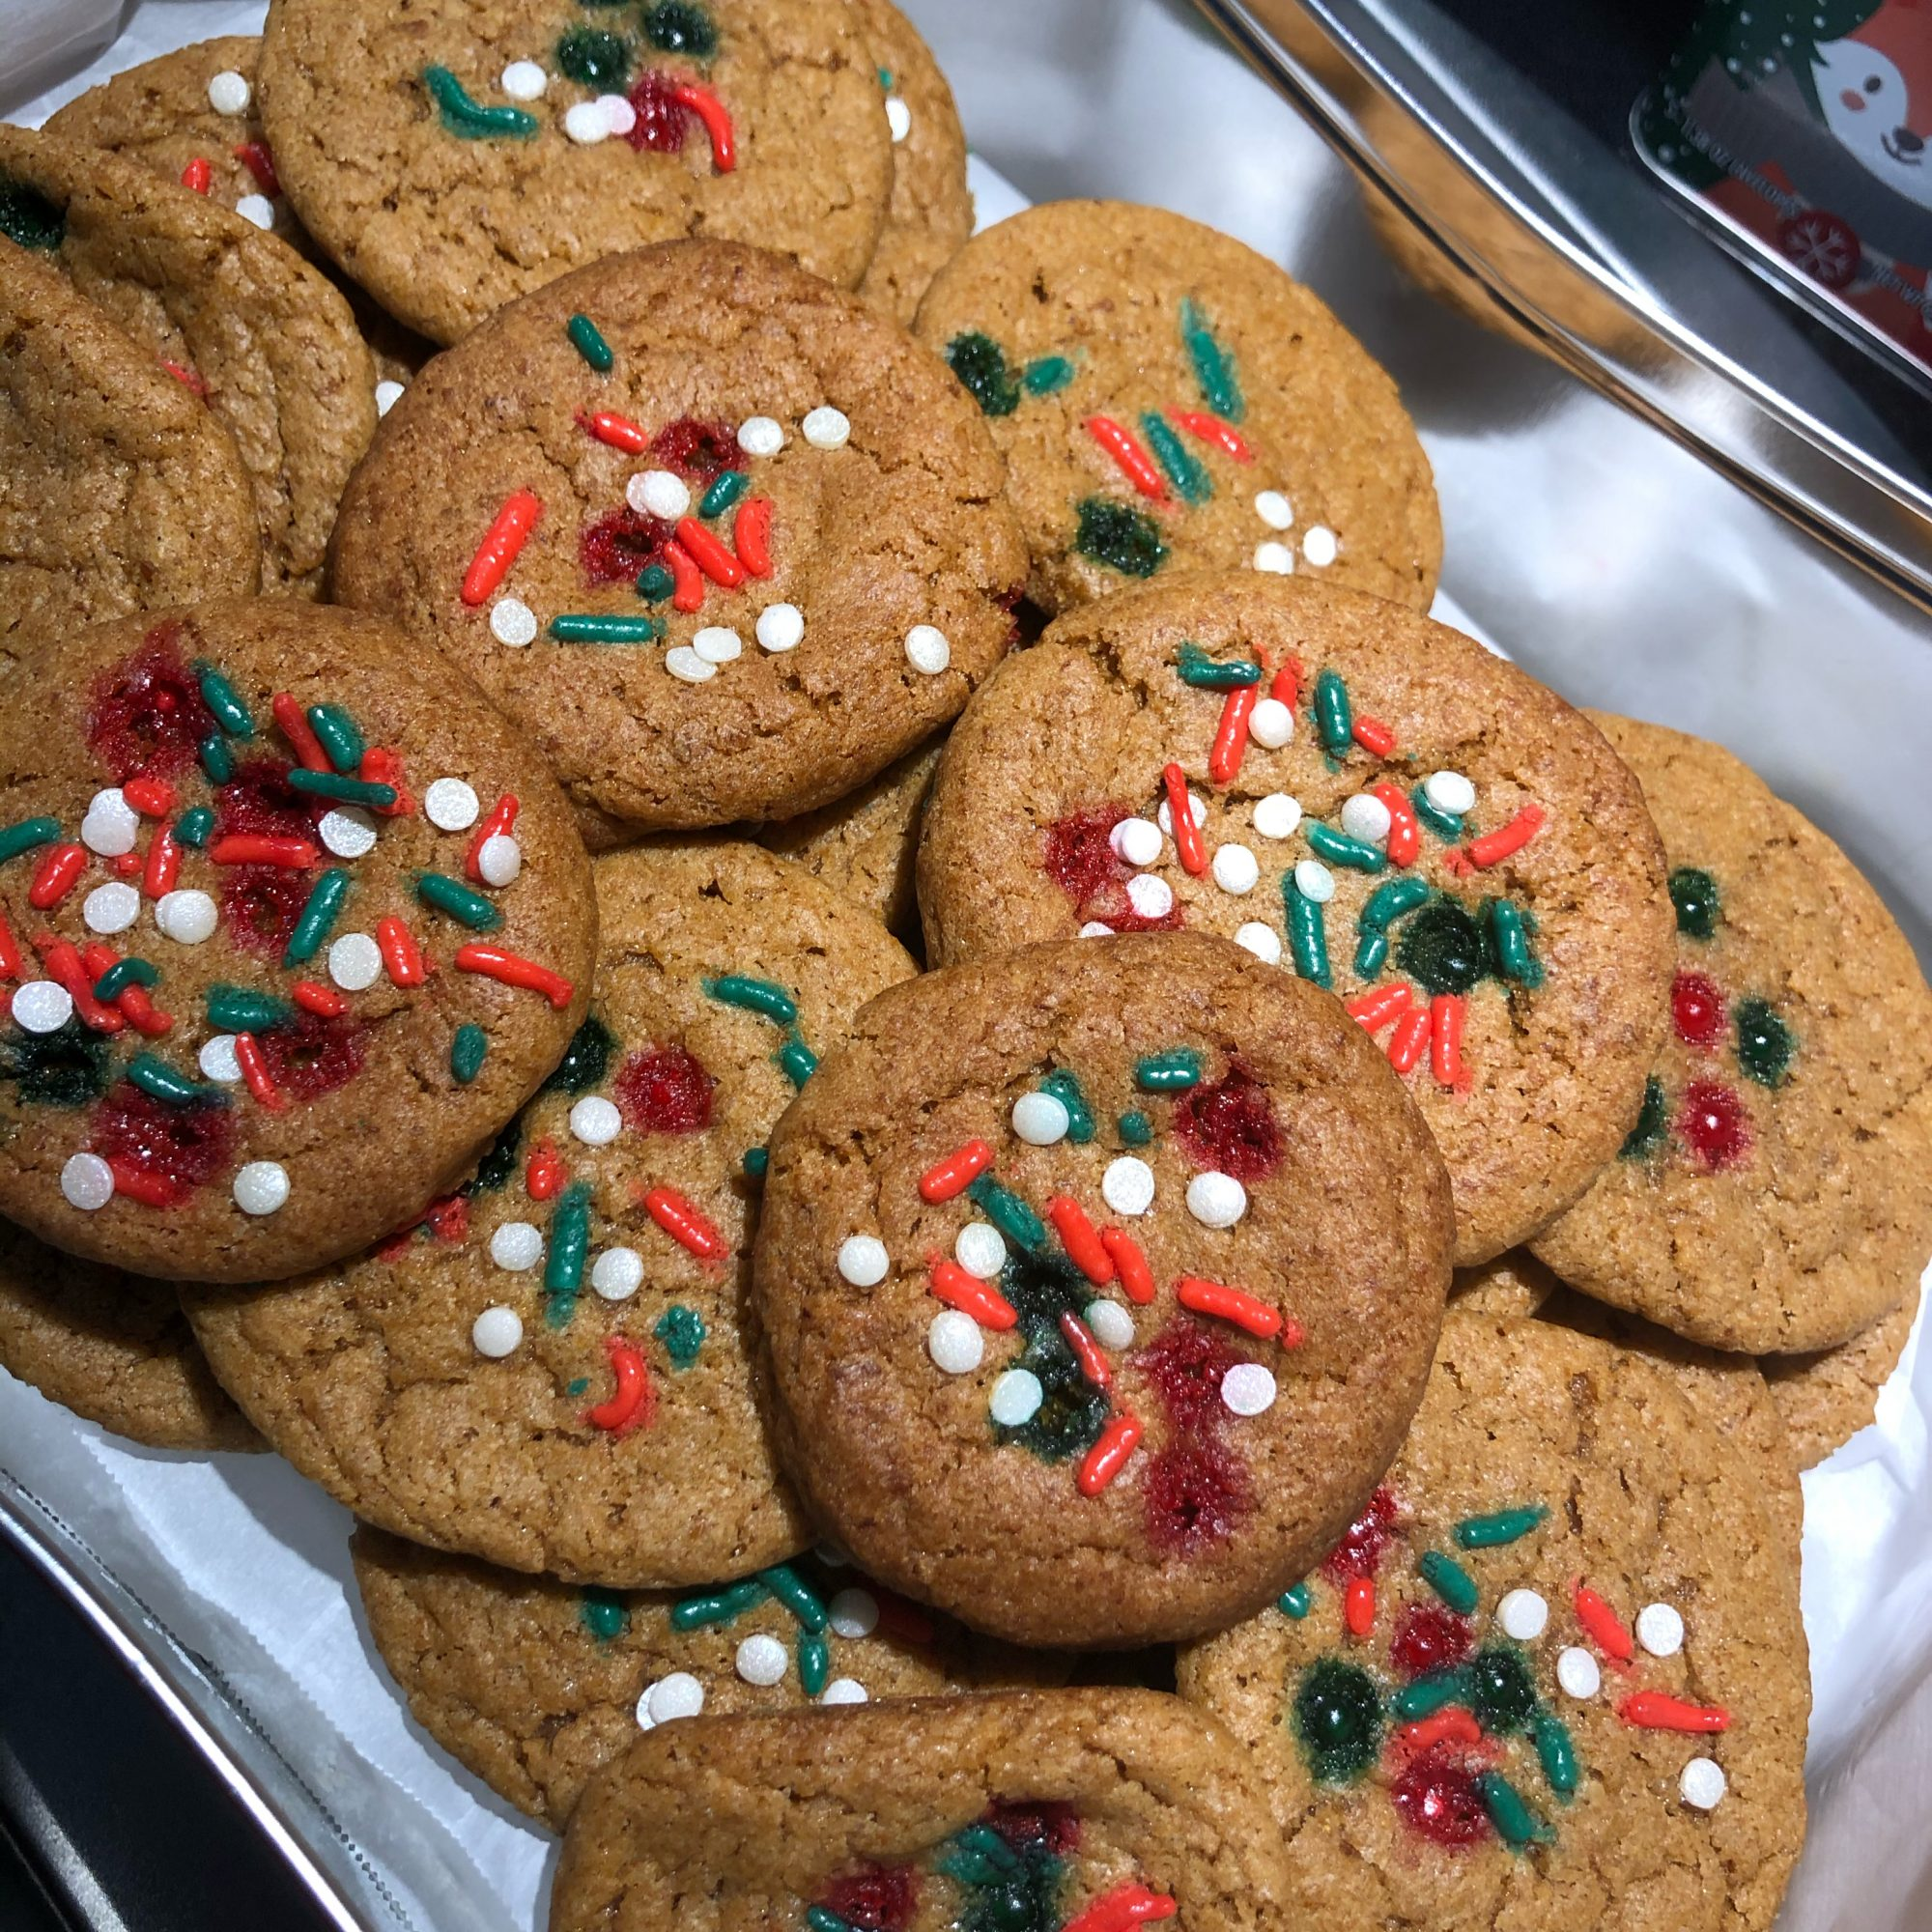 Despite their size, these giant spice cookies are super simple to make thanks to one special ingredient: spice cake mix. The cake mix gives these cookies a soft, airy feeling but still yields a satisfyingly chewy cookie.